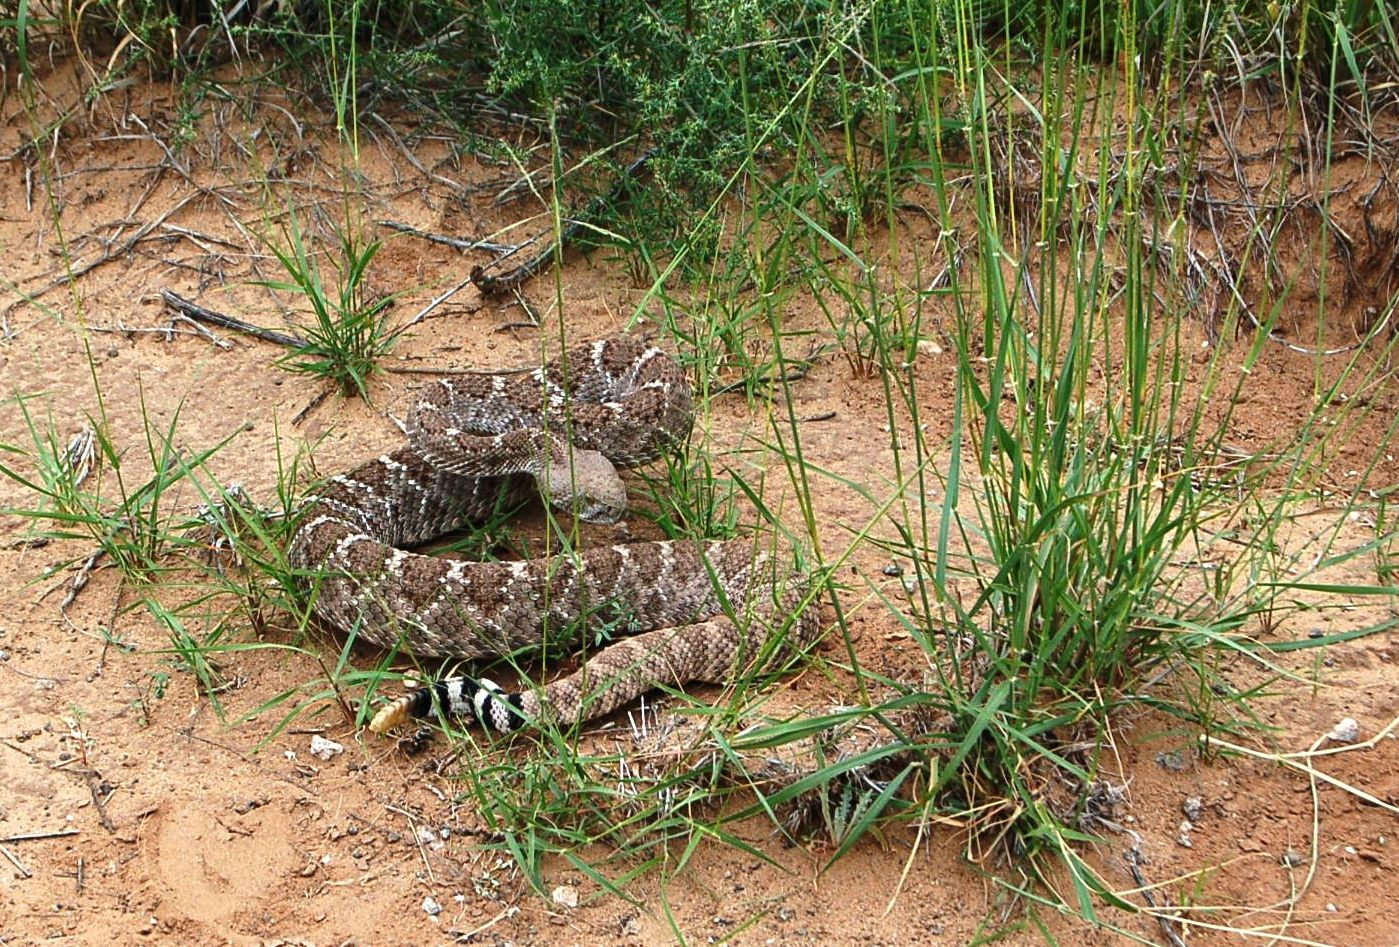 Can you see the footprint just below the snake on the left of the photo? (click photo to enlarge)